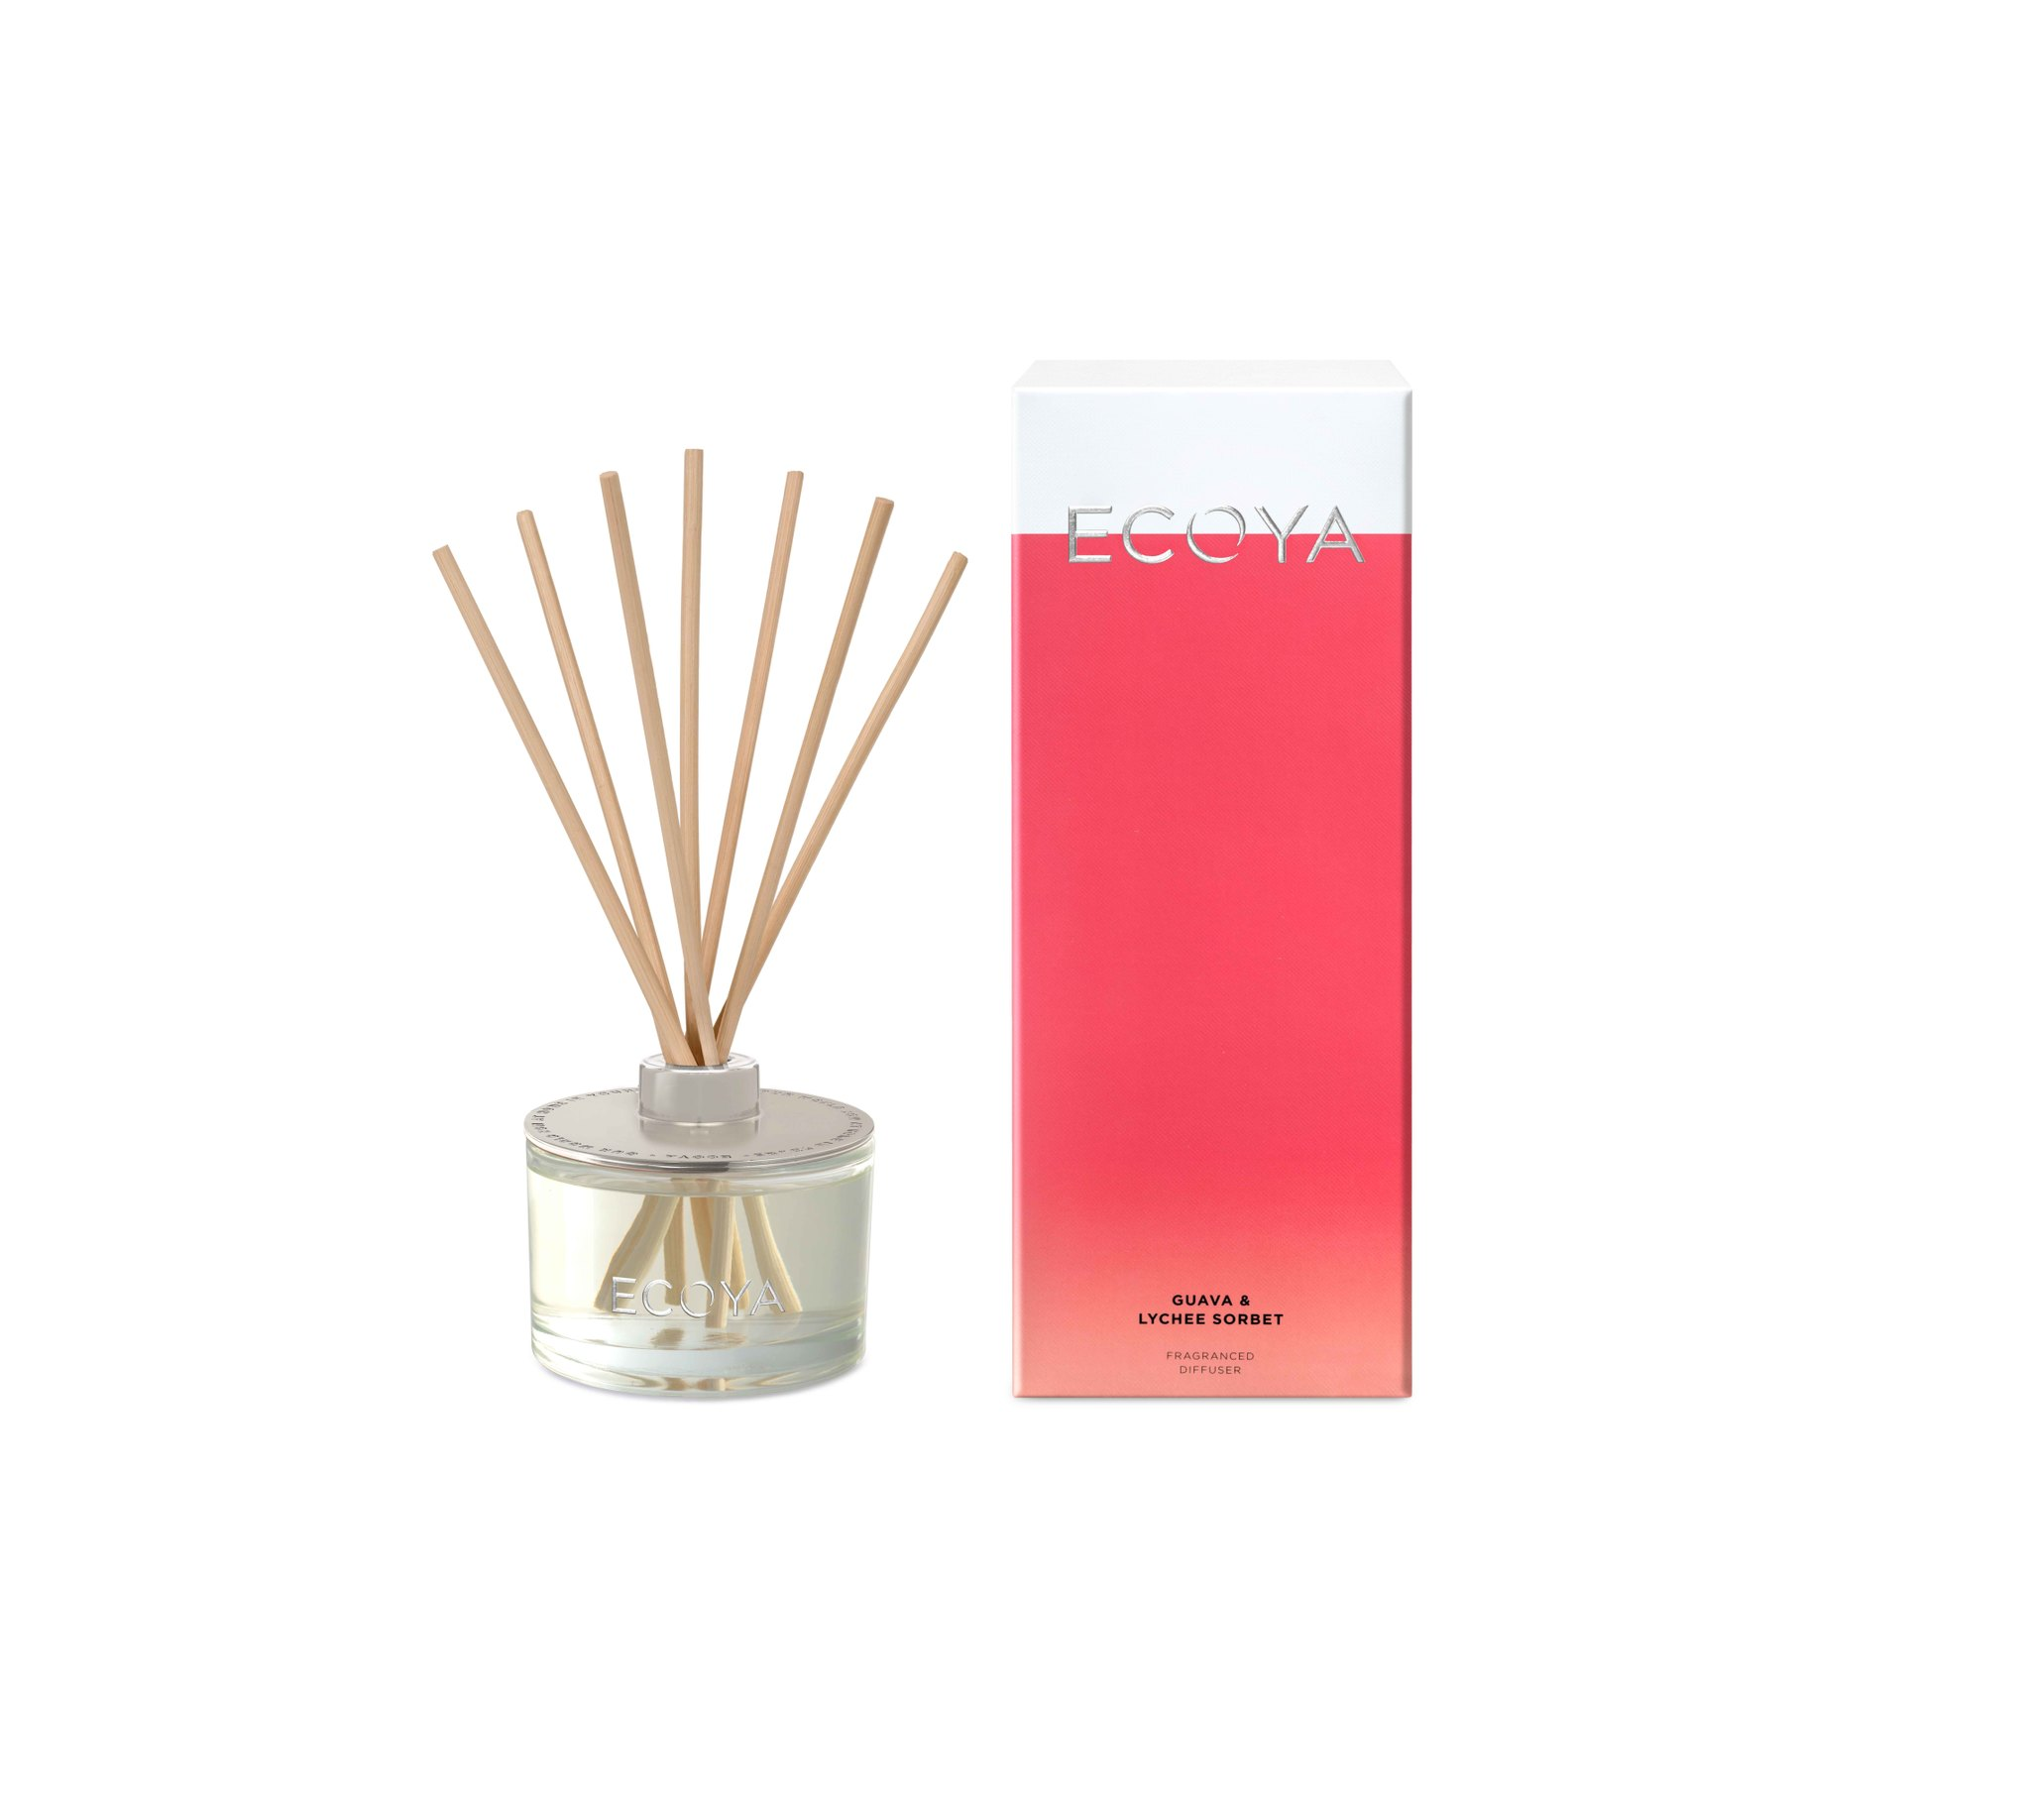 Ecoya guava & lychee sorbet diffuser Melbourne delivery.